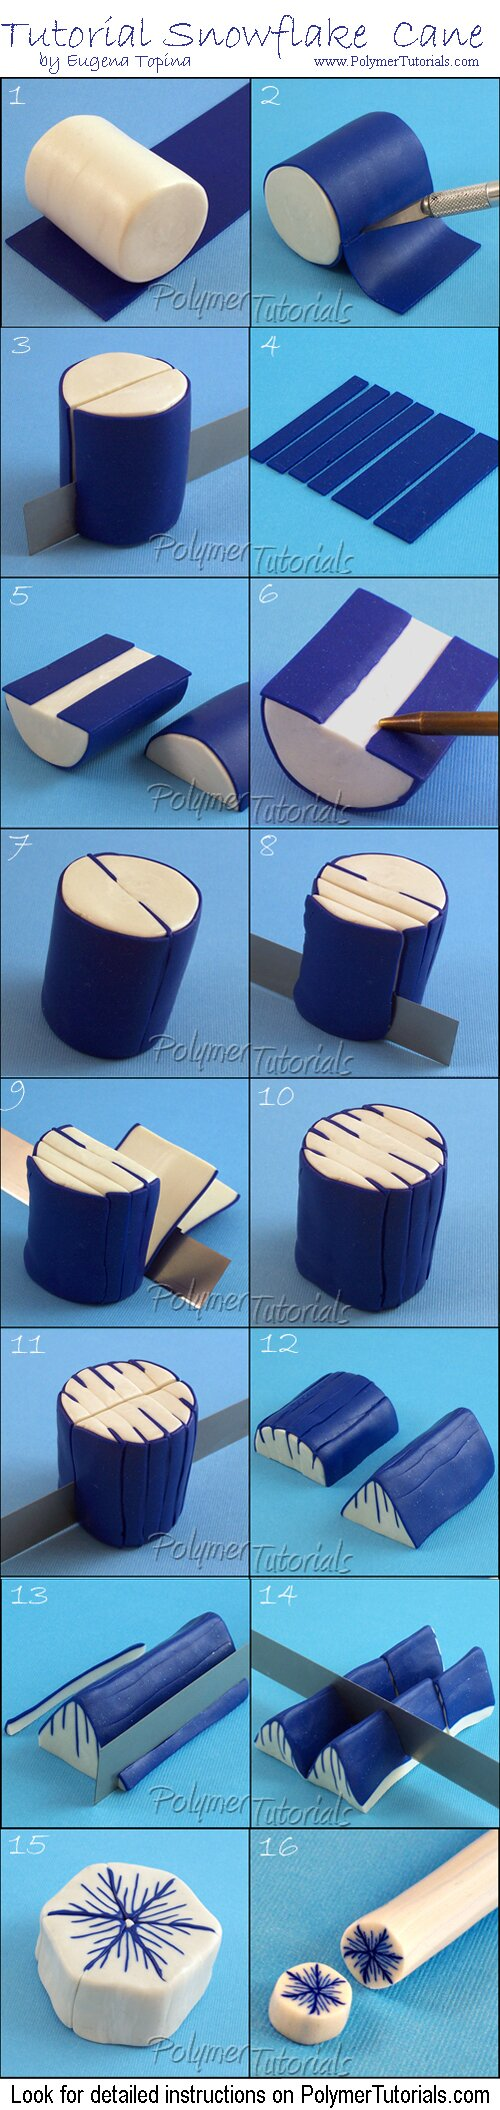 Image for Free Polymer Clay Tutorial Snowflake Cane